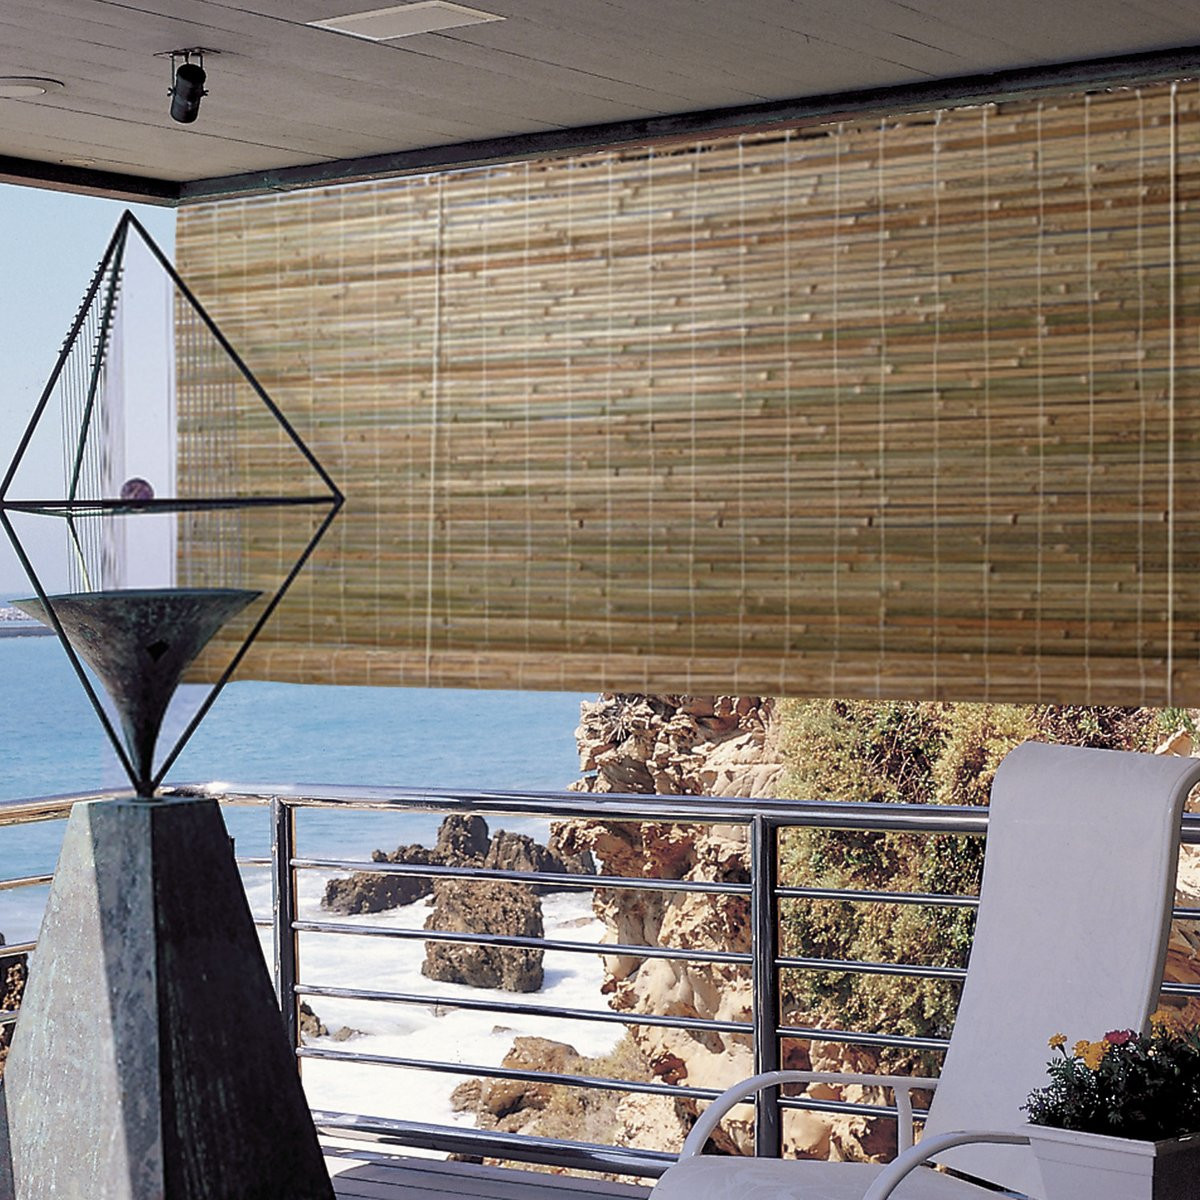 Best ideas about Bamboo Patio Shades . Save or Pin MatchStickBlinds by Tropitek Trading Ltd Now.